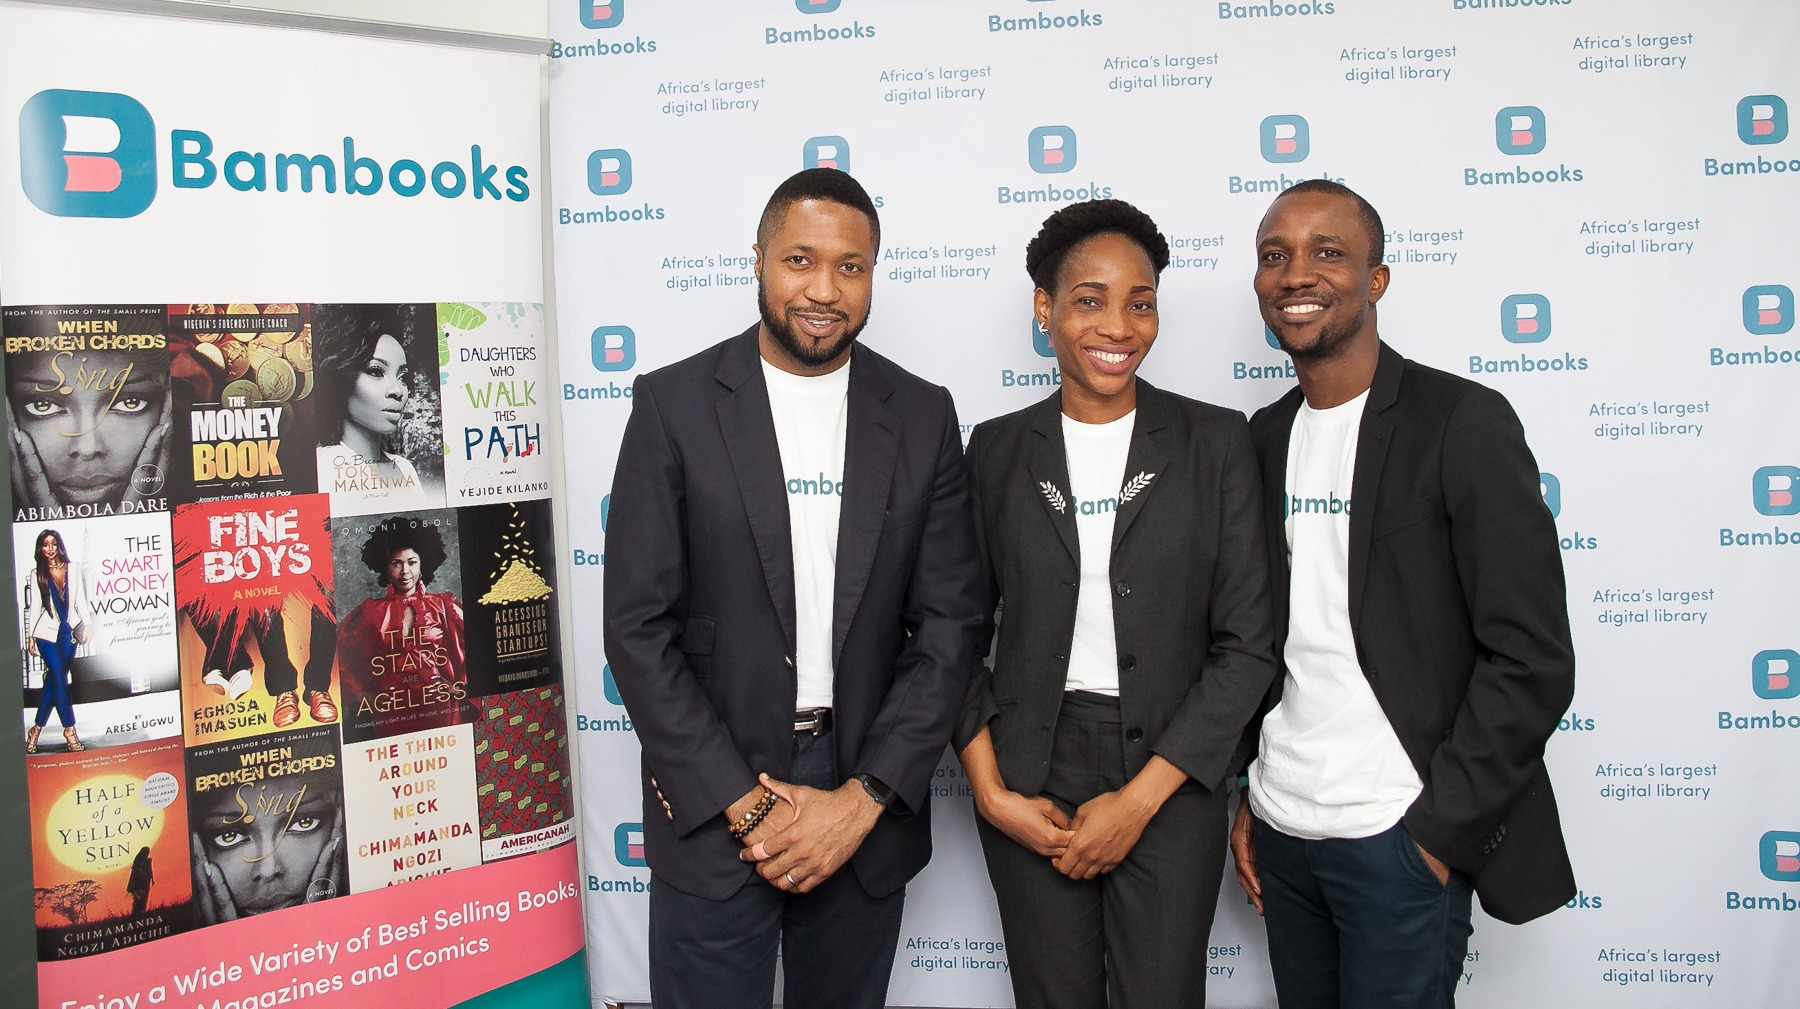 Bambooks Launches Nigeria's Largest Digital Library